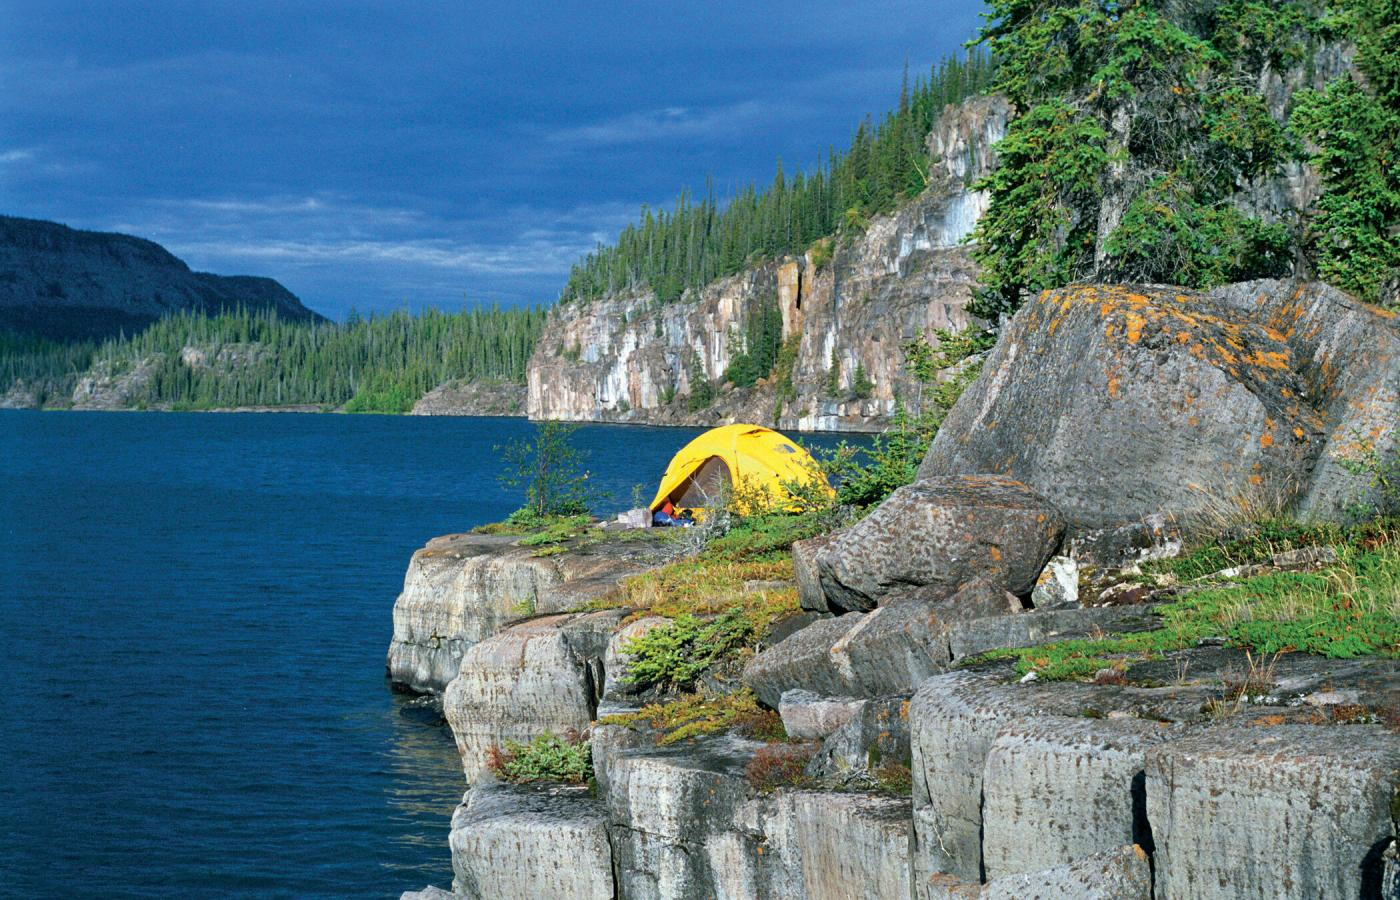 Camping in the East Arm of Great Slave Lake in the Northwest Territories